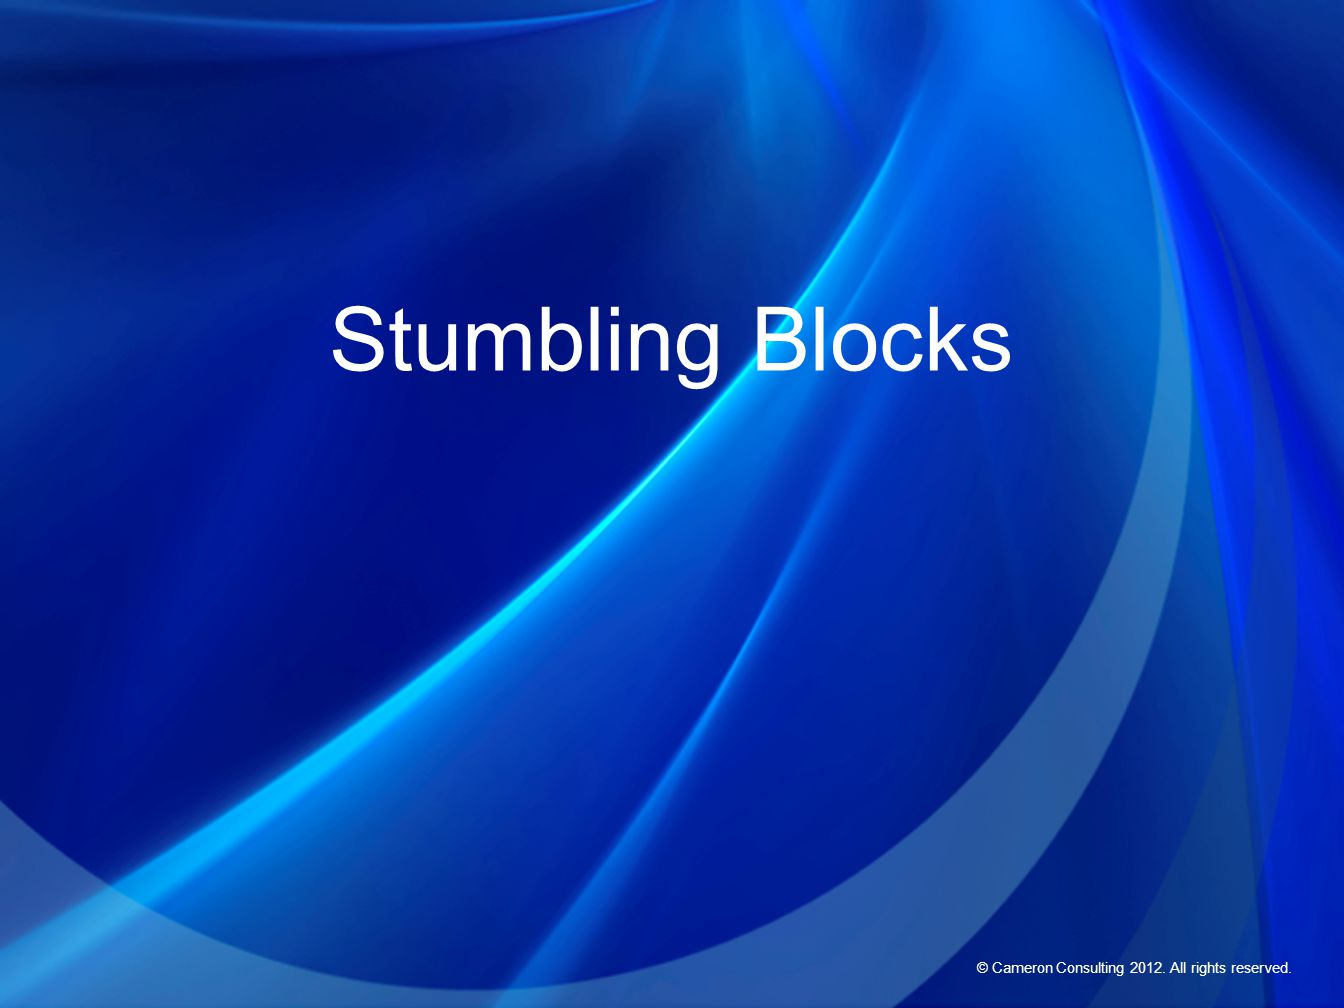 © Cameron Consulting 2012. All rights reserved. Stumbling Blocks